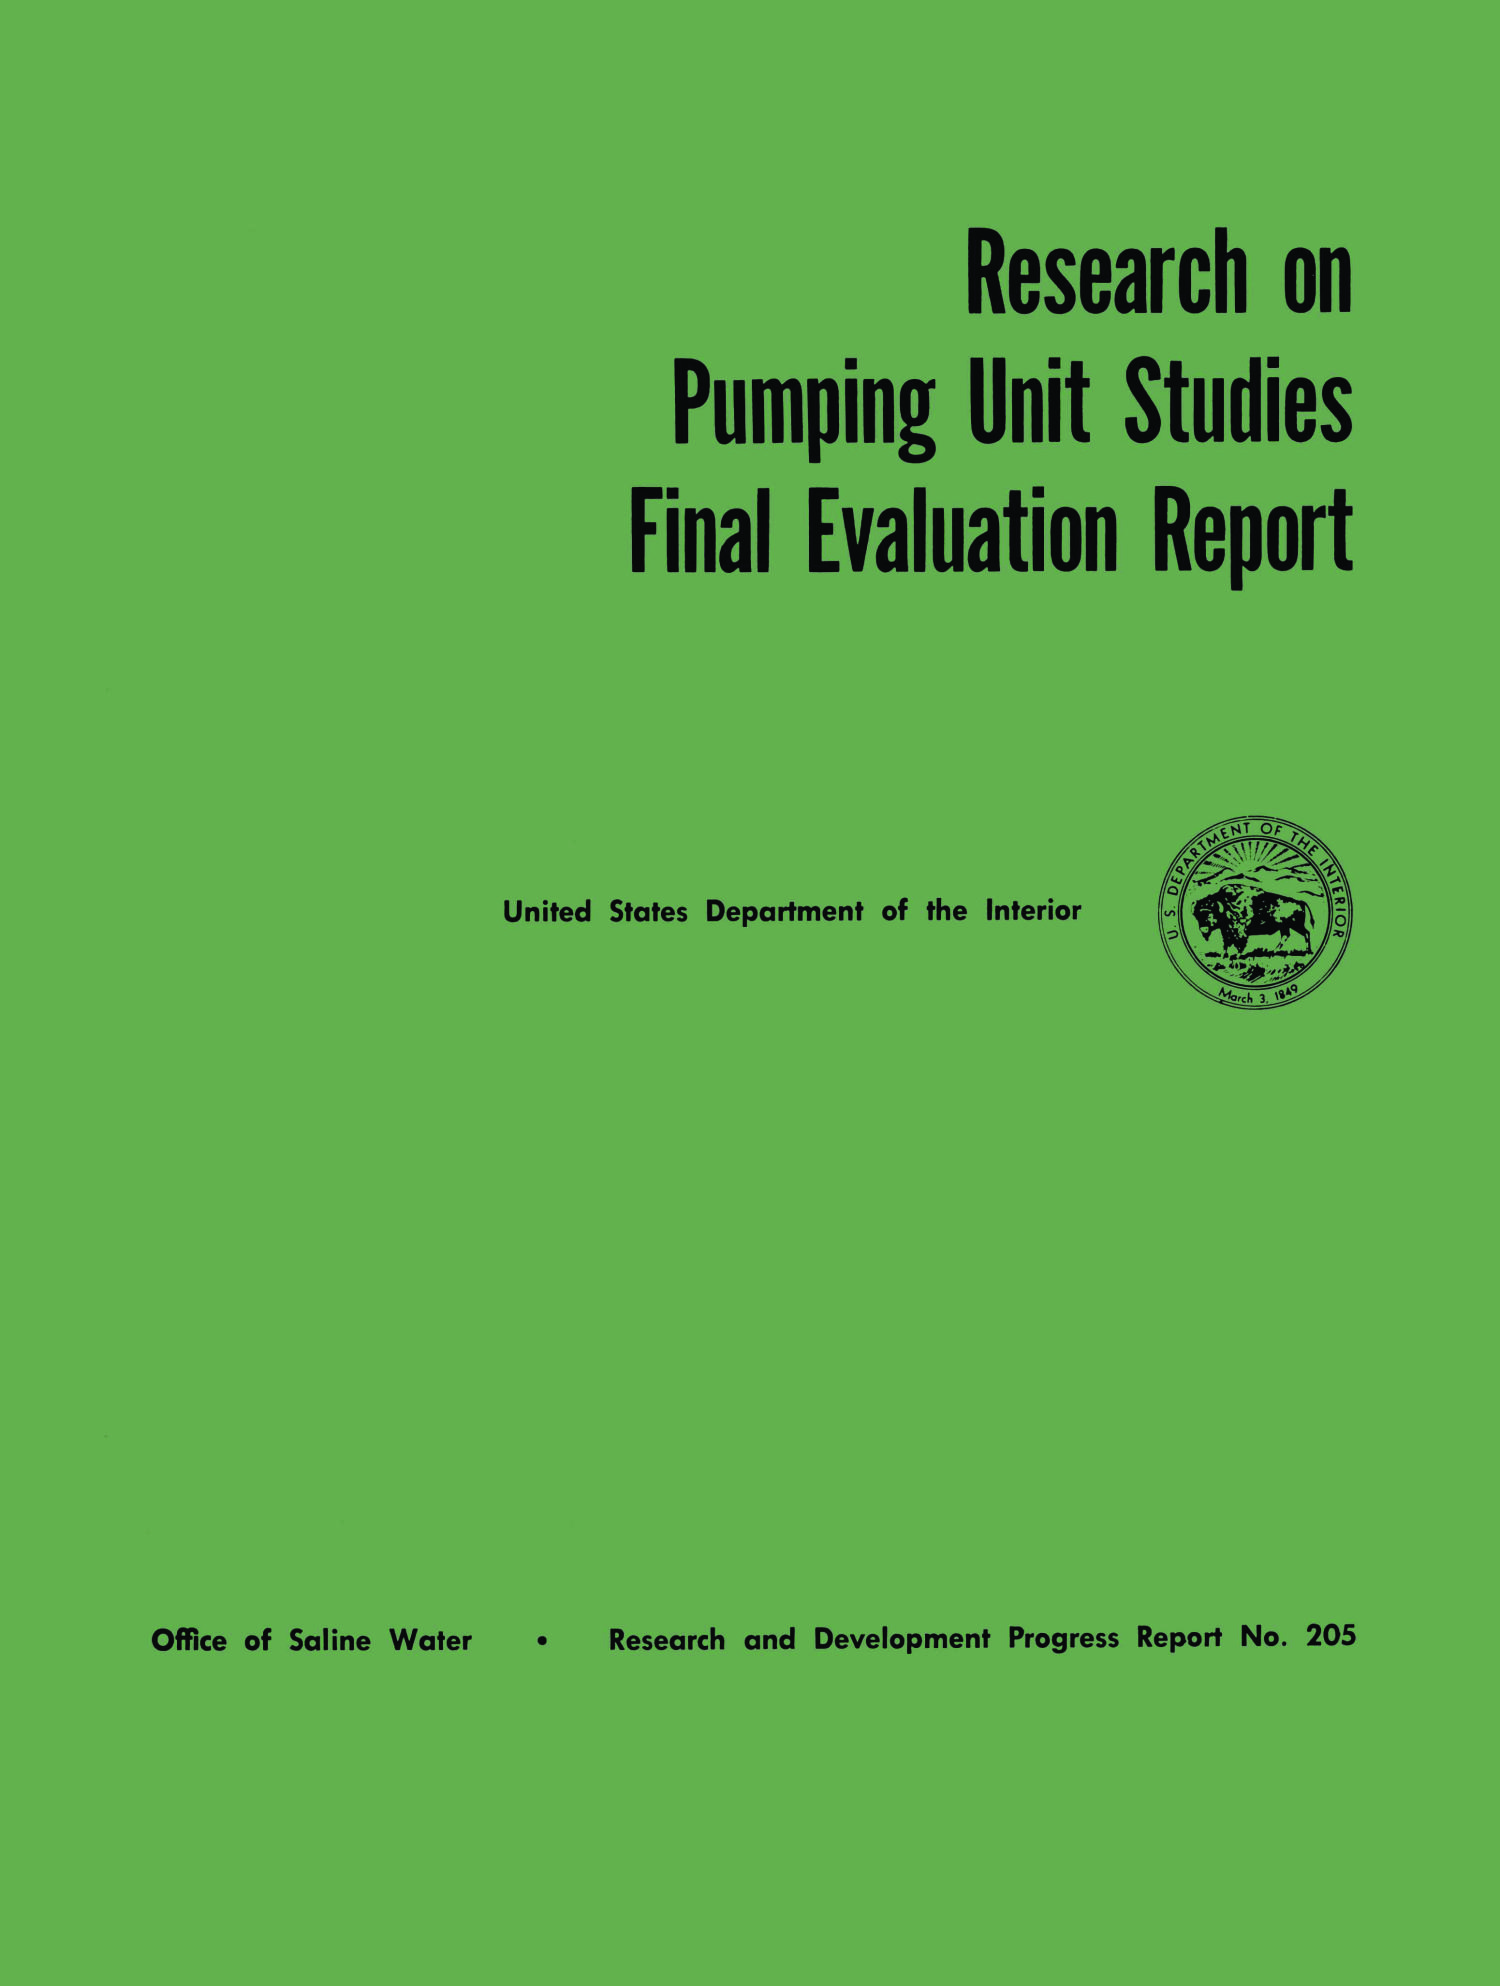 Research on Pumping Unit Studies: Final Evaluation Report                                                                                                      I